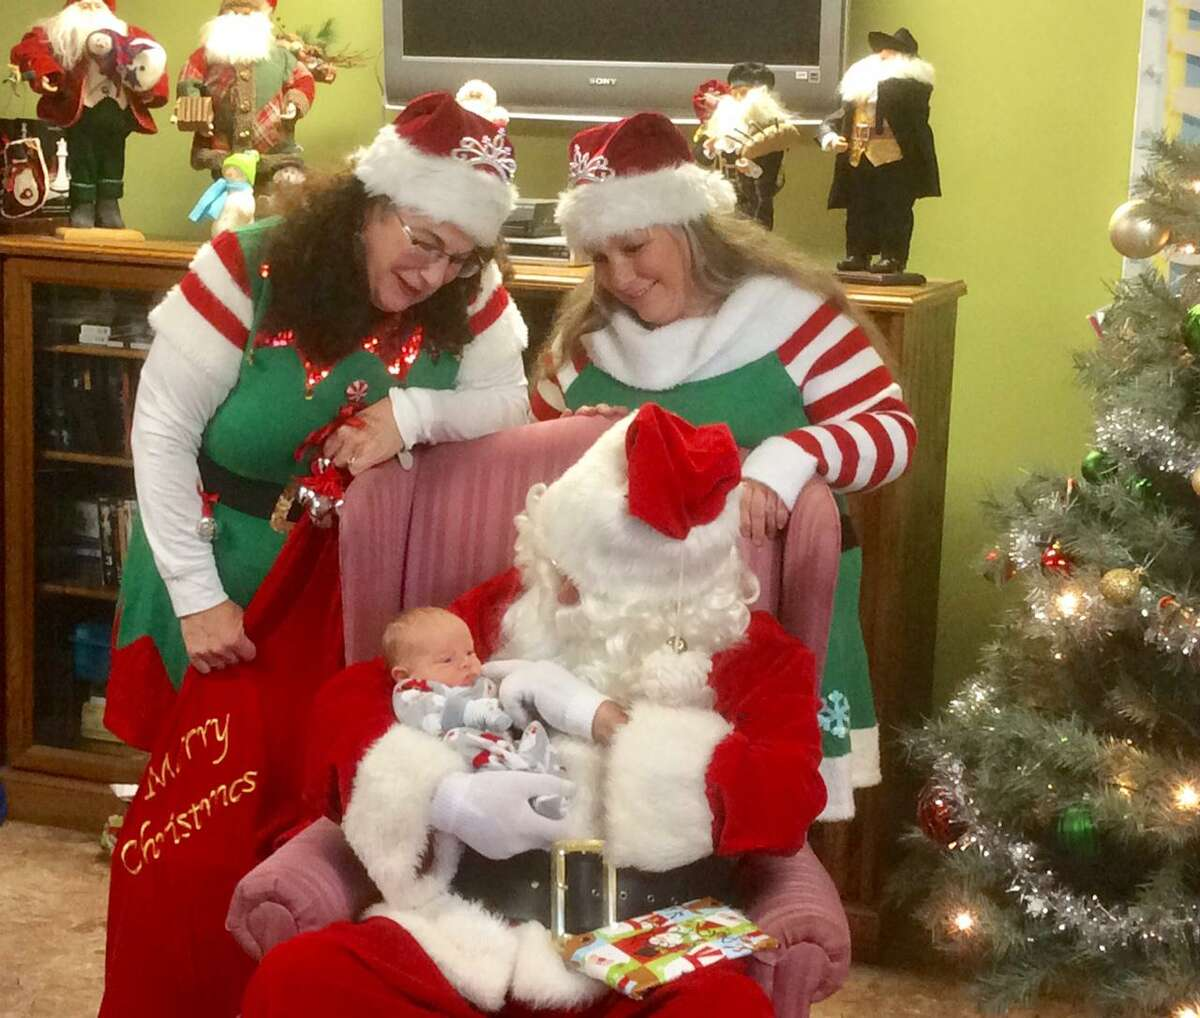 Santa Claus holds the FISH shelter's youngest resident - an 8-day-old baby, during the shelter's Cookies & Cocoa party for the shelter's children.